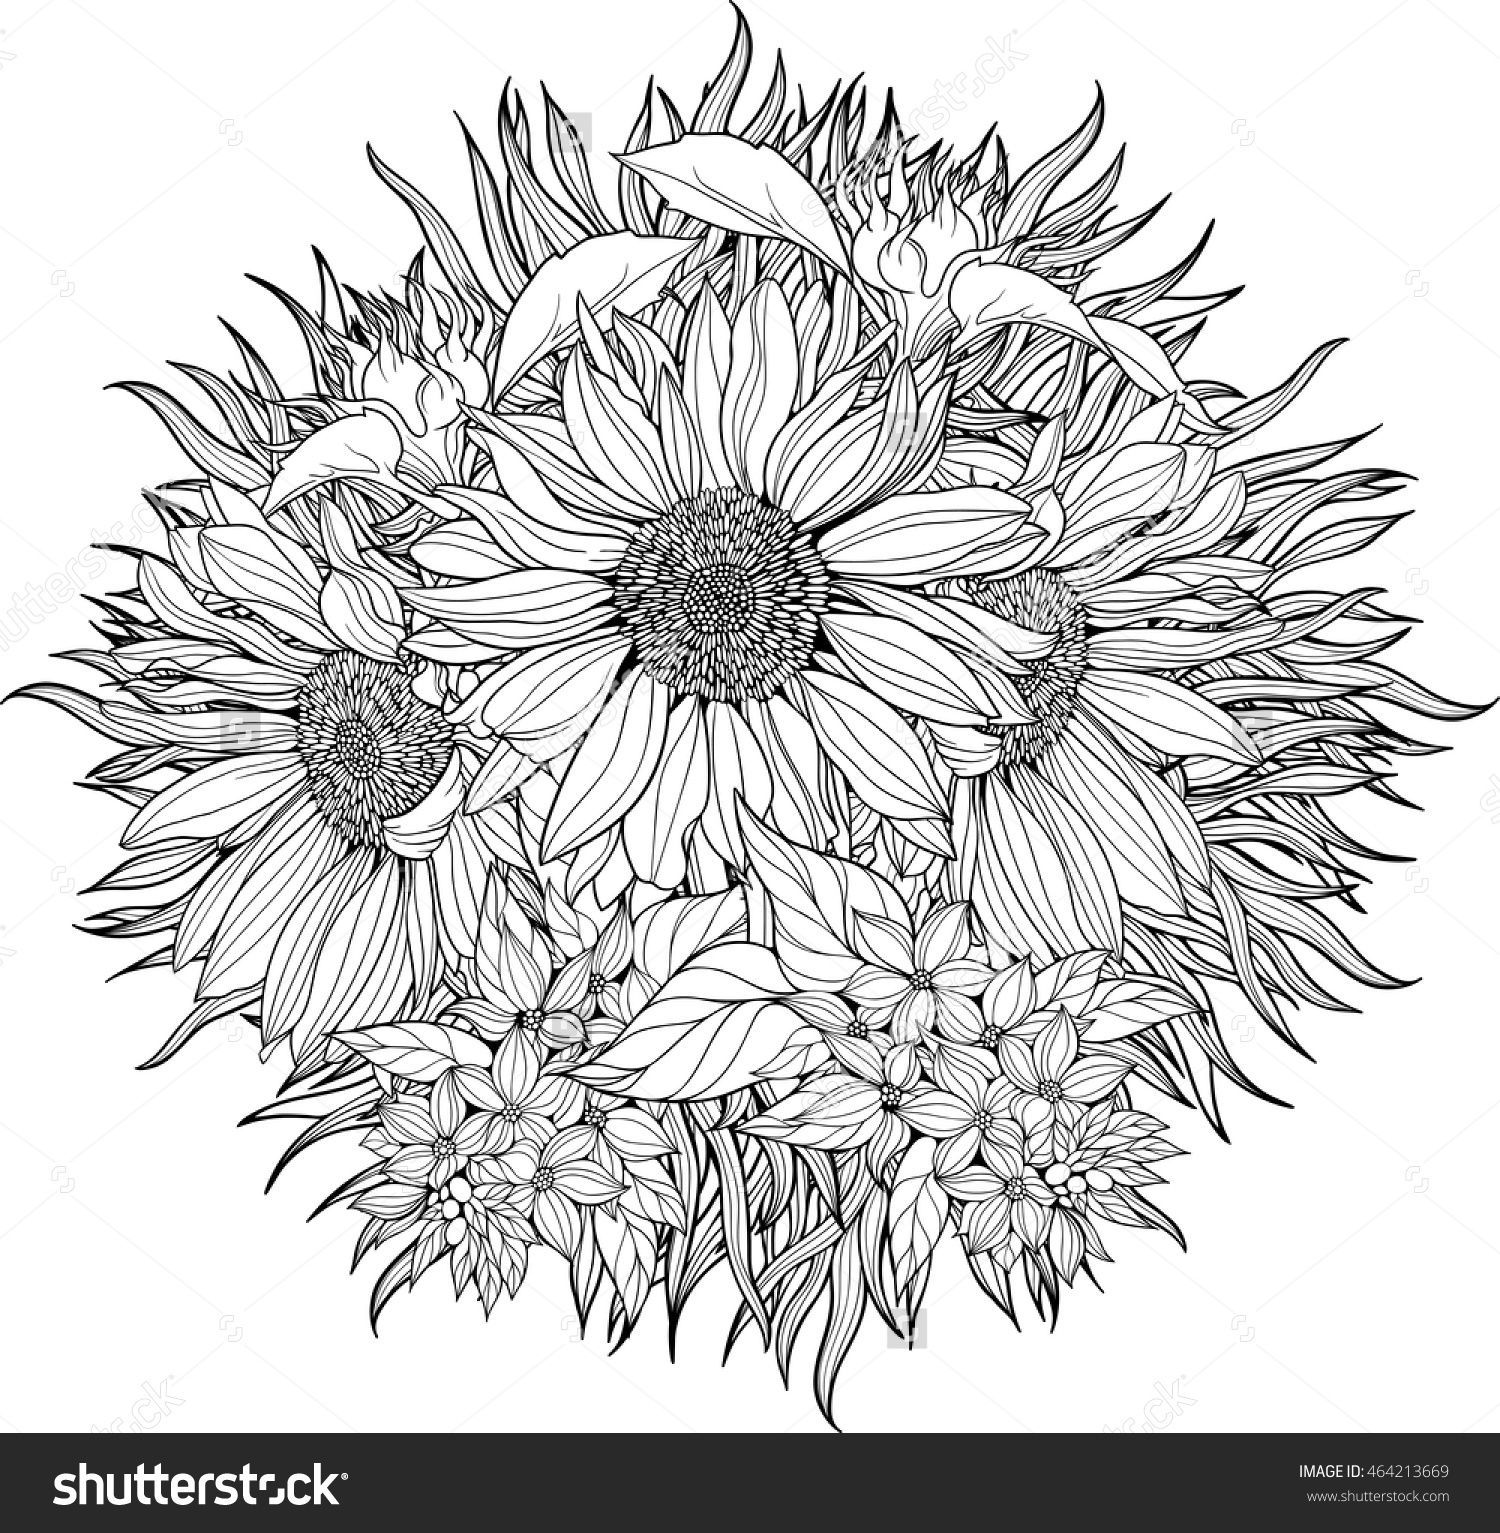 closeup view of bunch of sunflowers. coloring page